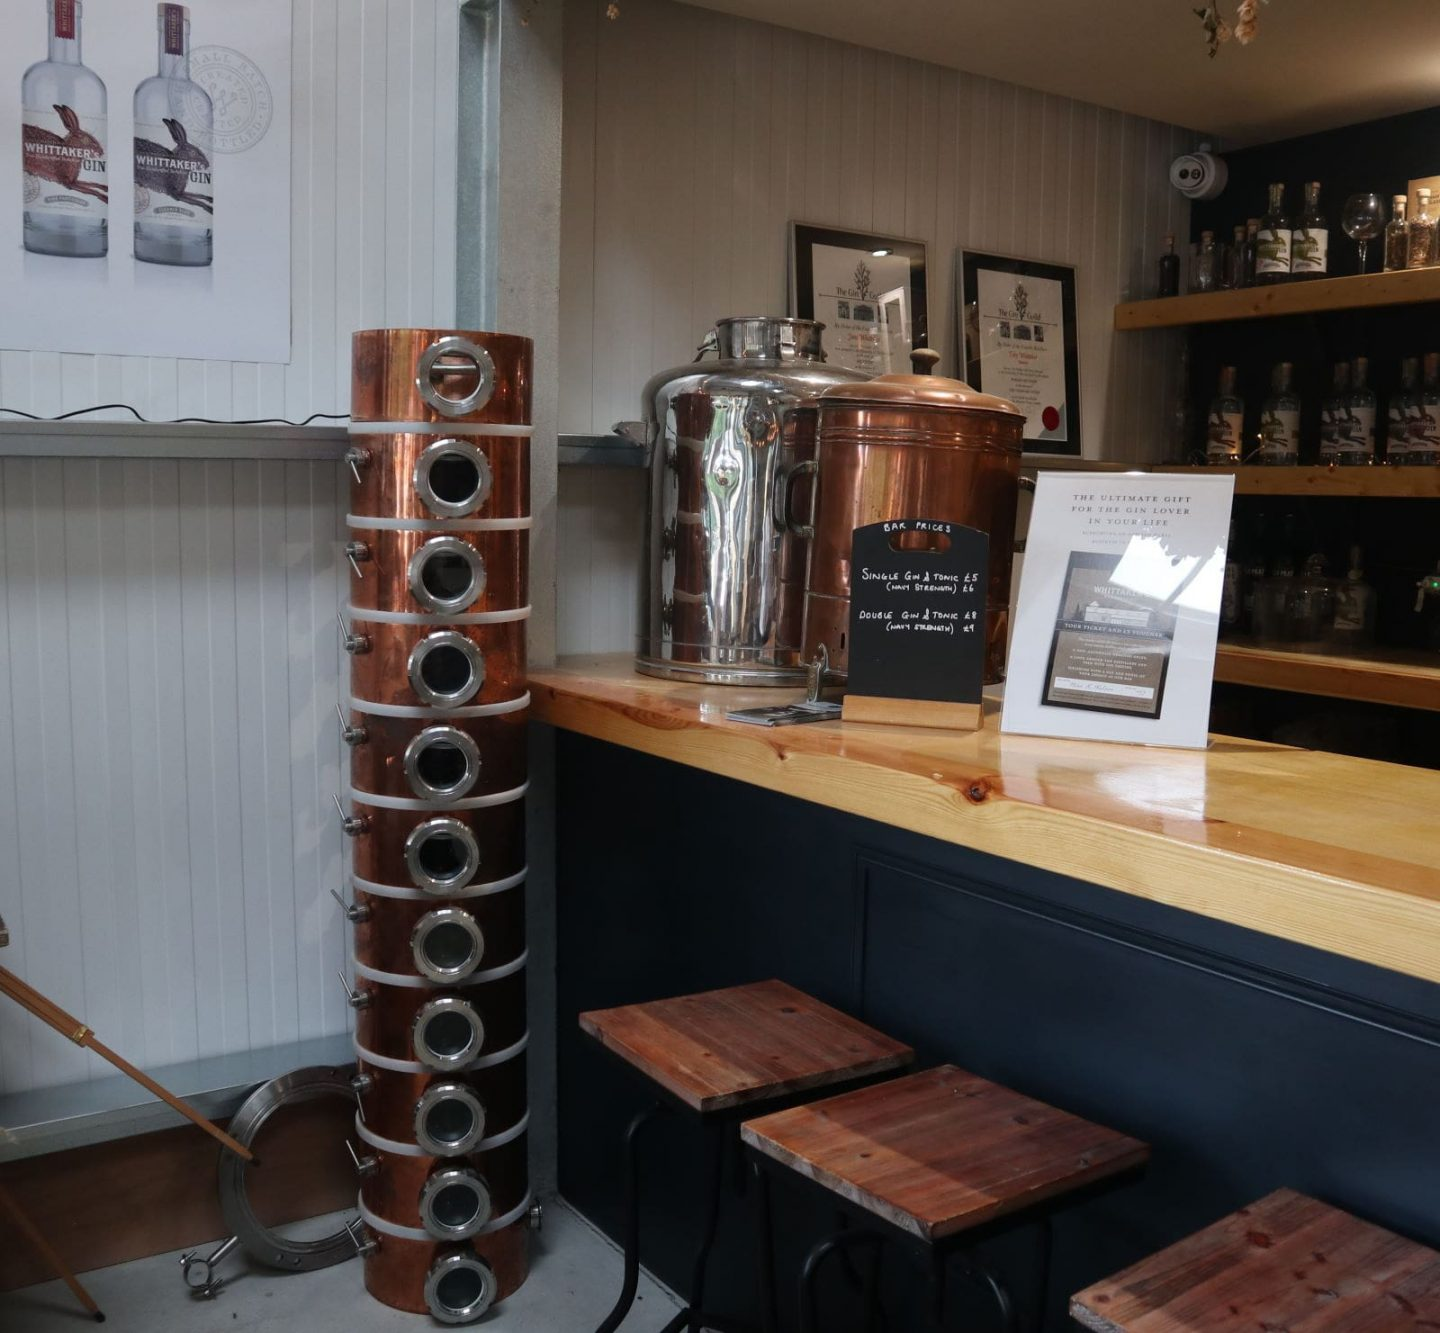 Whittaker's gin distillery shop at